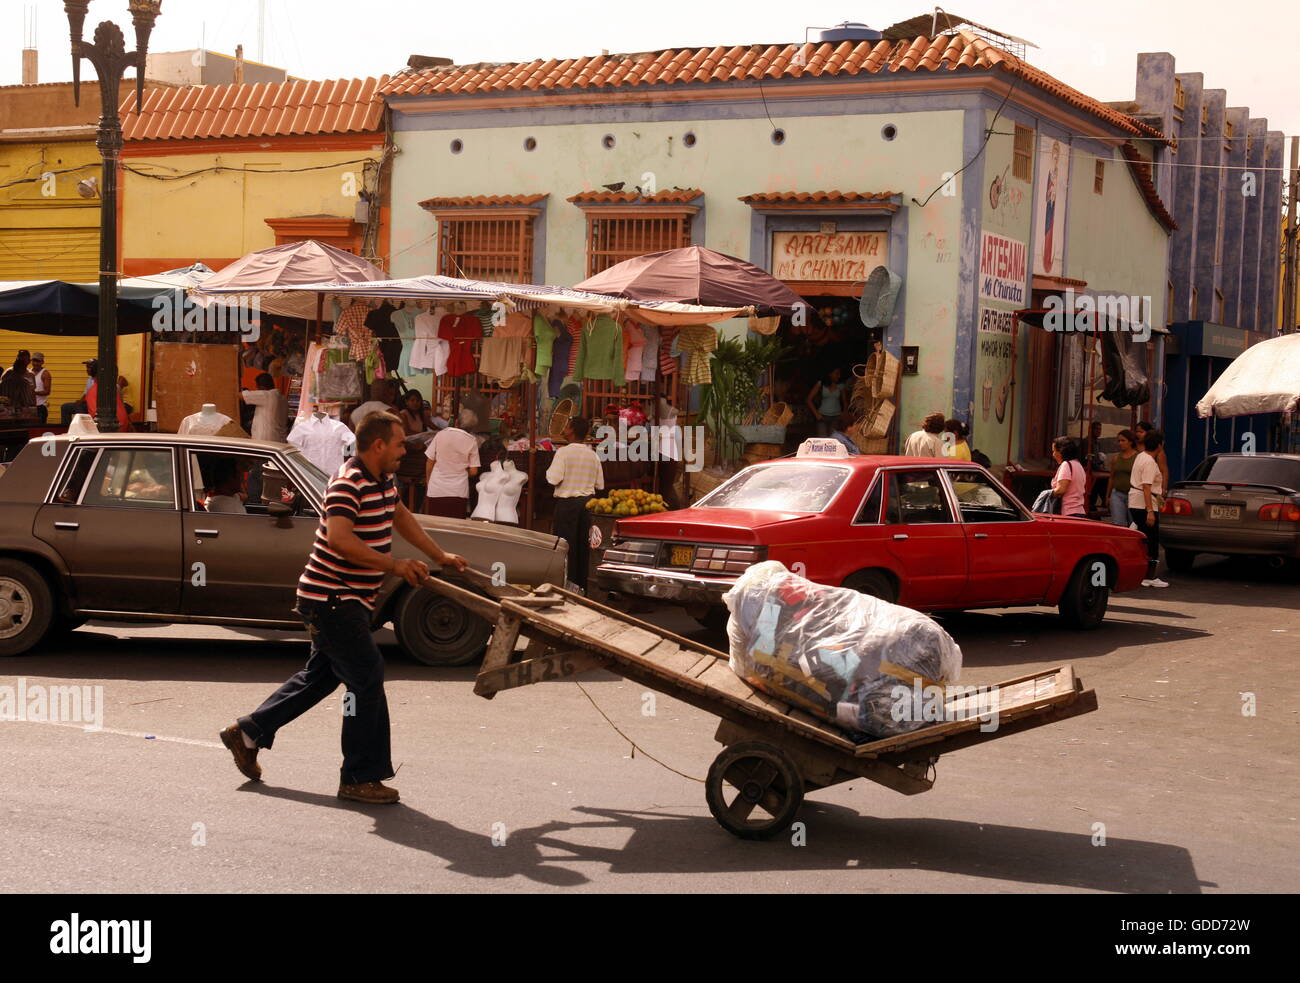 street life in the town of Maracaibo in the west of Venezuela. - Stock Image